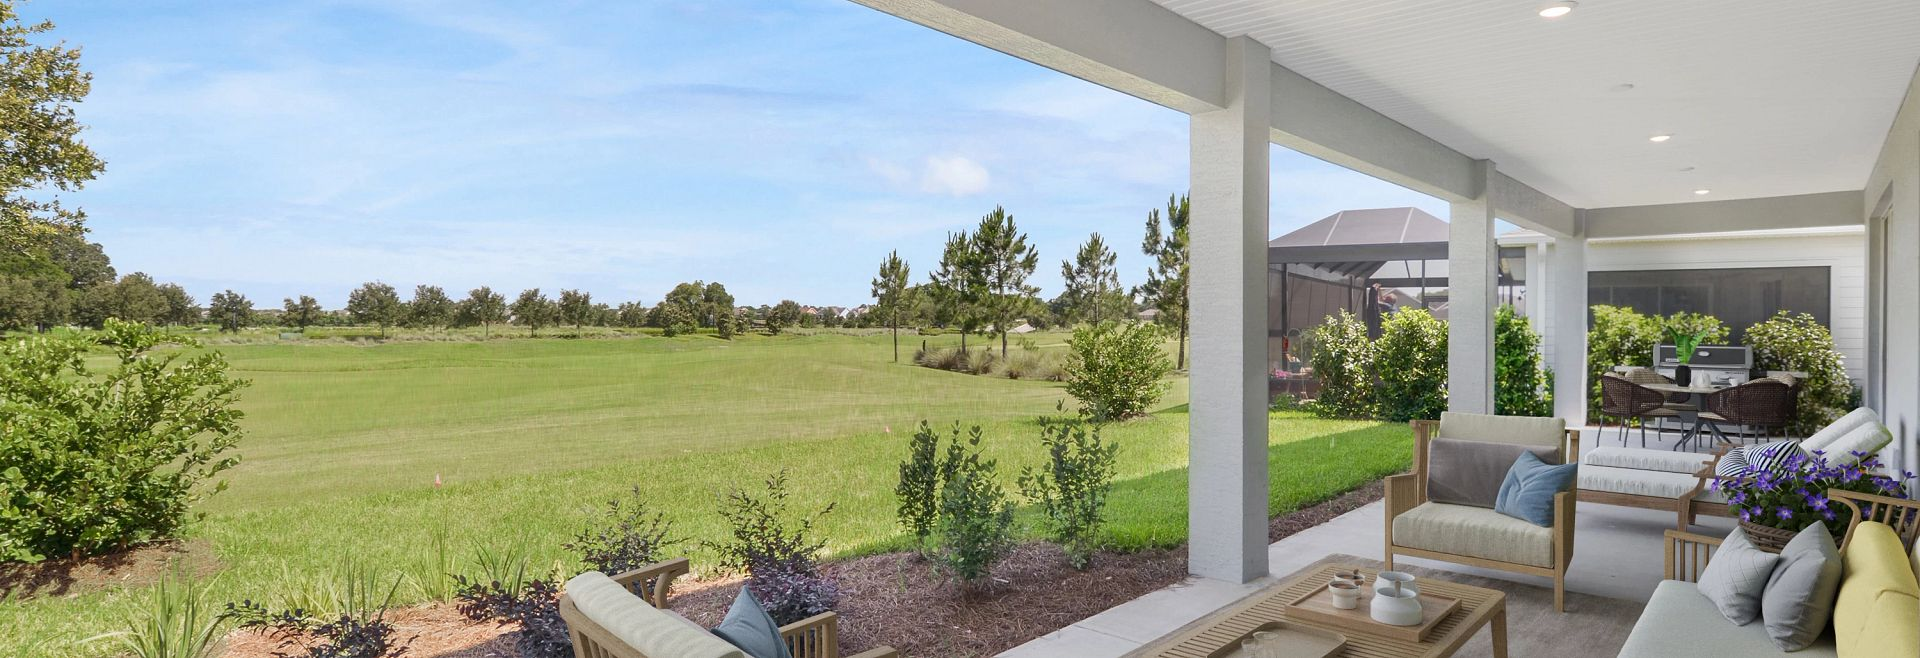 Trilogy at Ocala Preserve Liberty Quick Move In Virtually Staged Covered Lanai